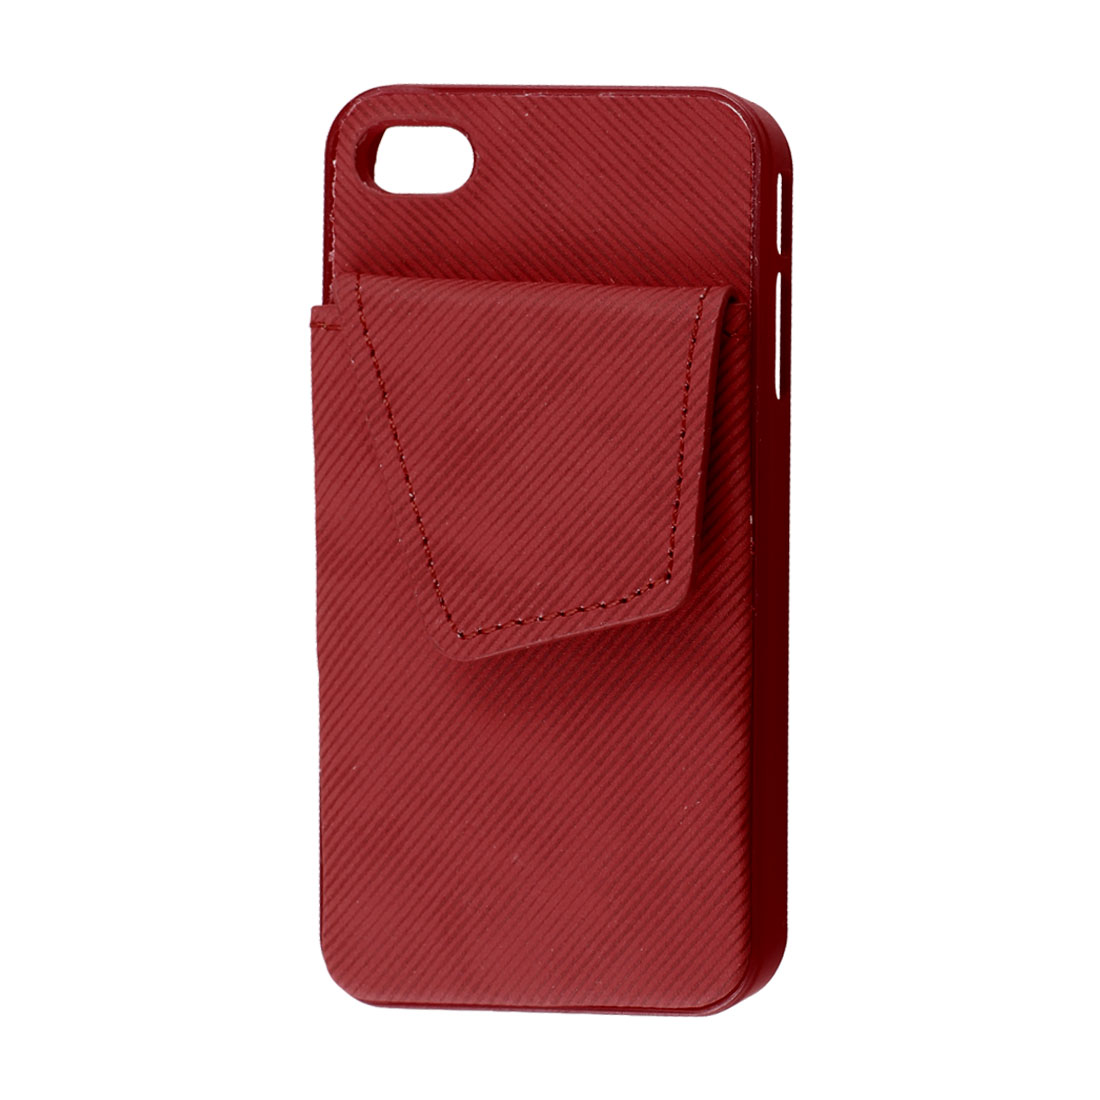 Red Faux Leather Plastic Rim Credit Card Back Case Pouch for iPhone 4G